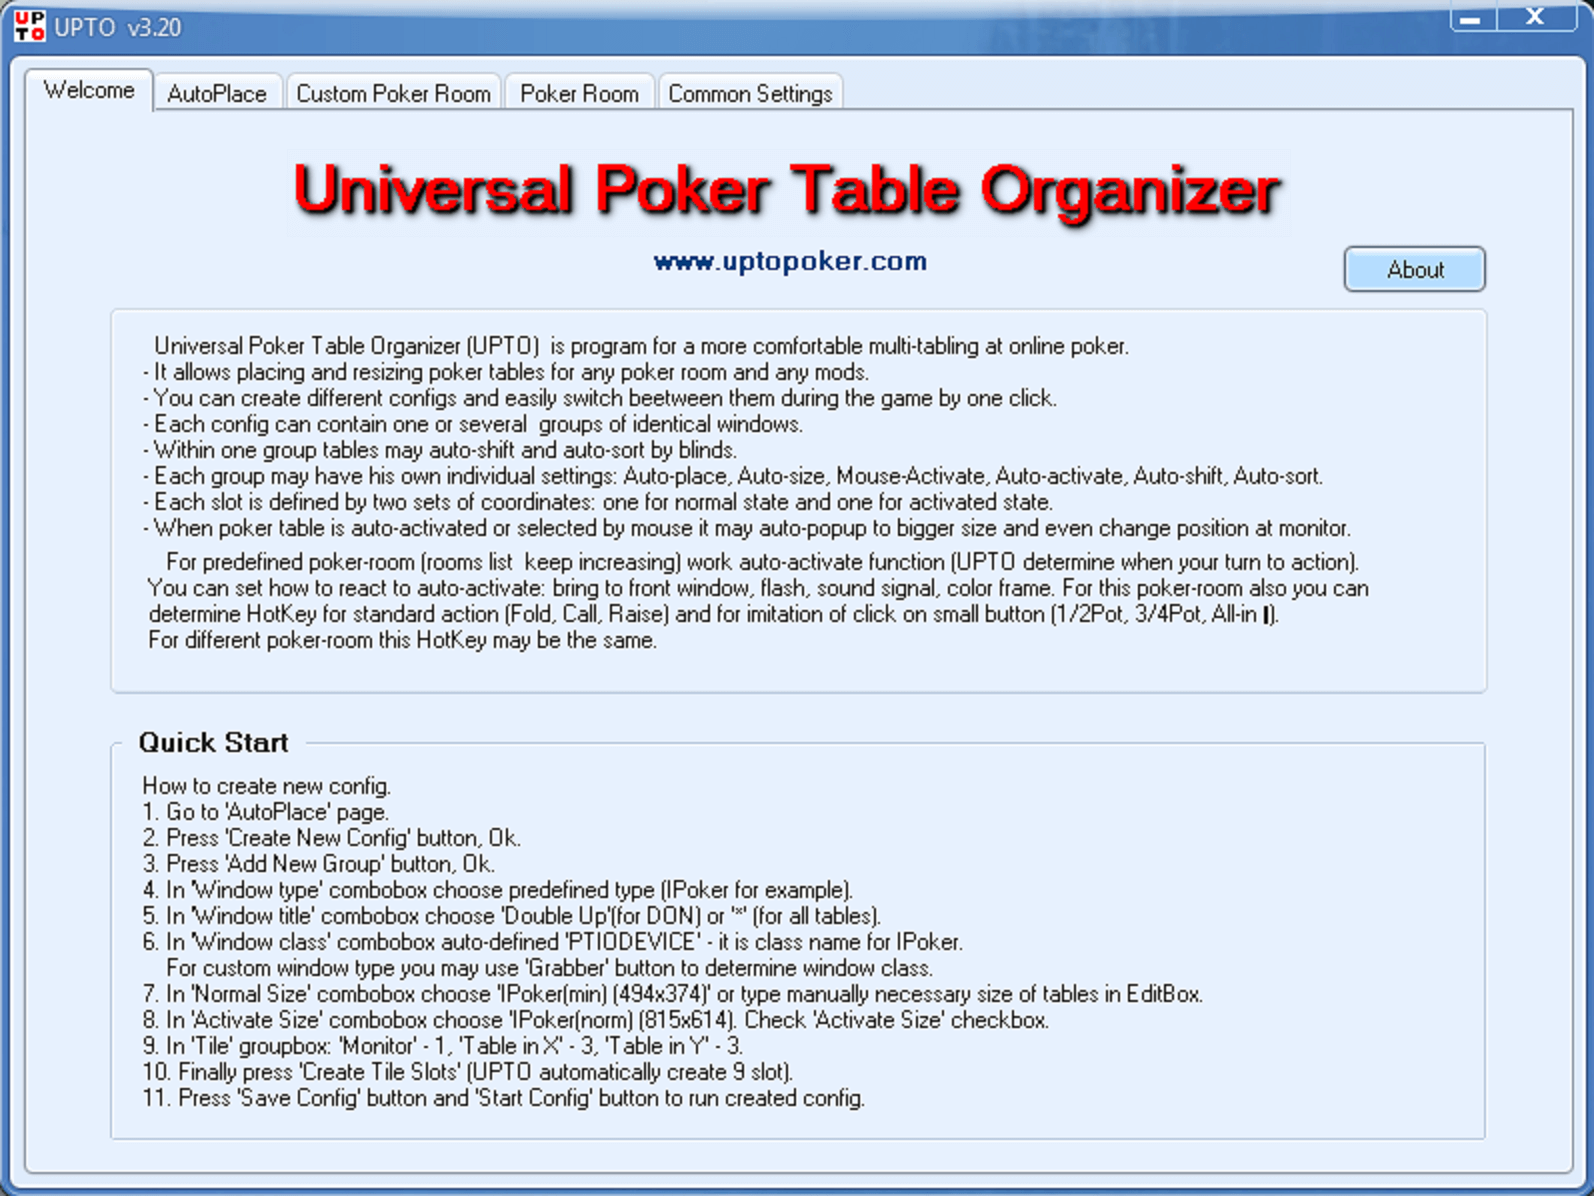 universal Poker Table Organizer(UPTO) - Welcome